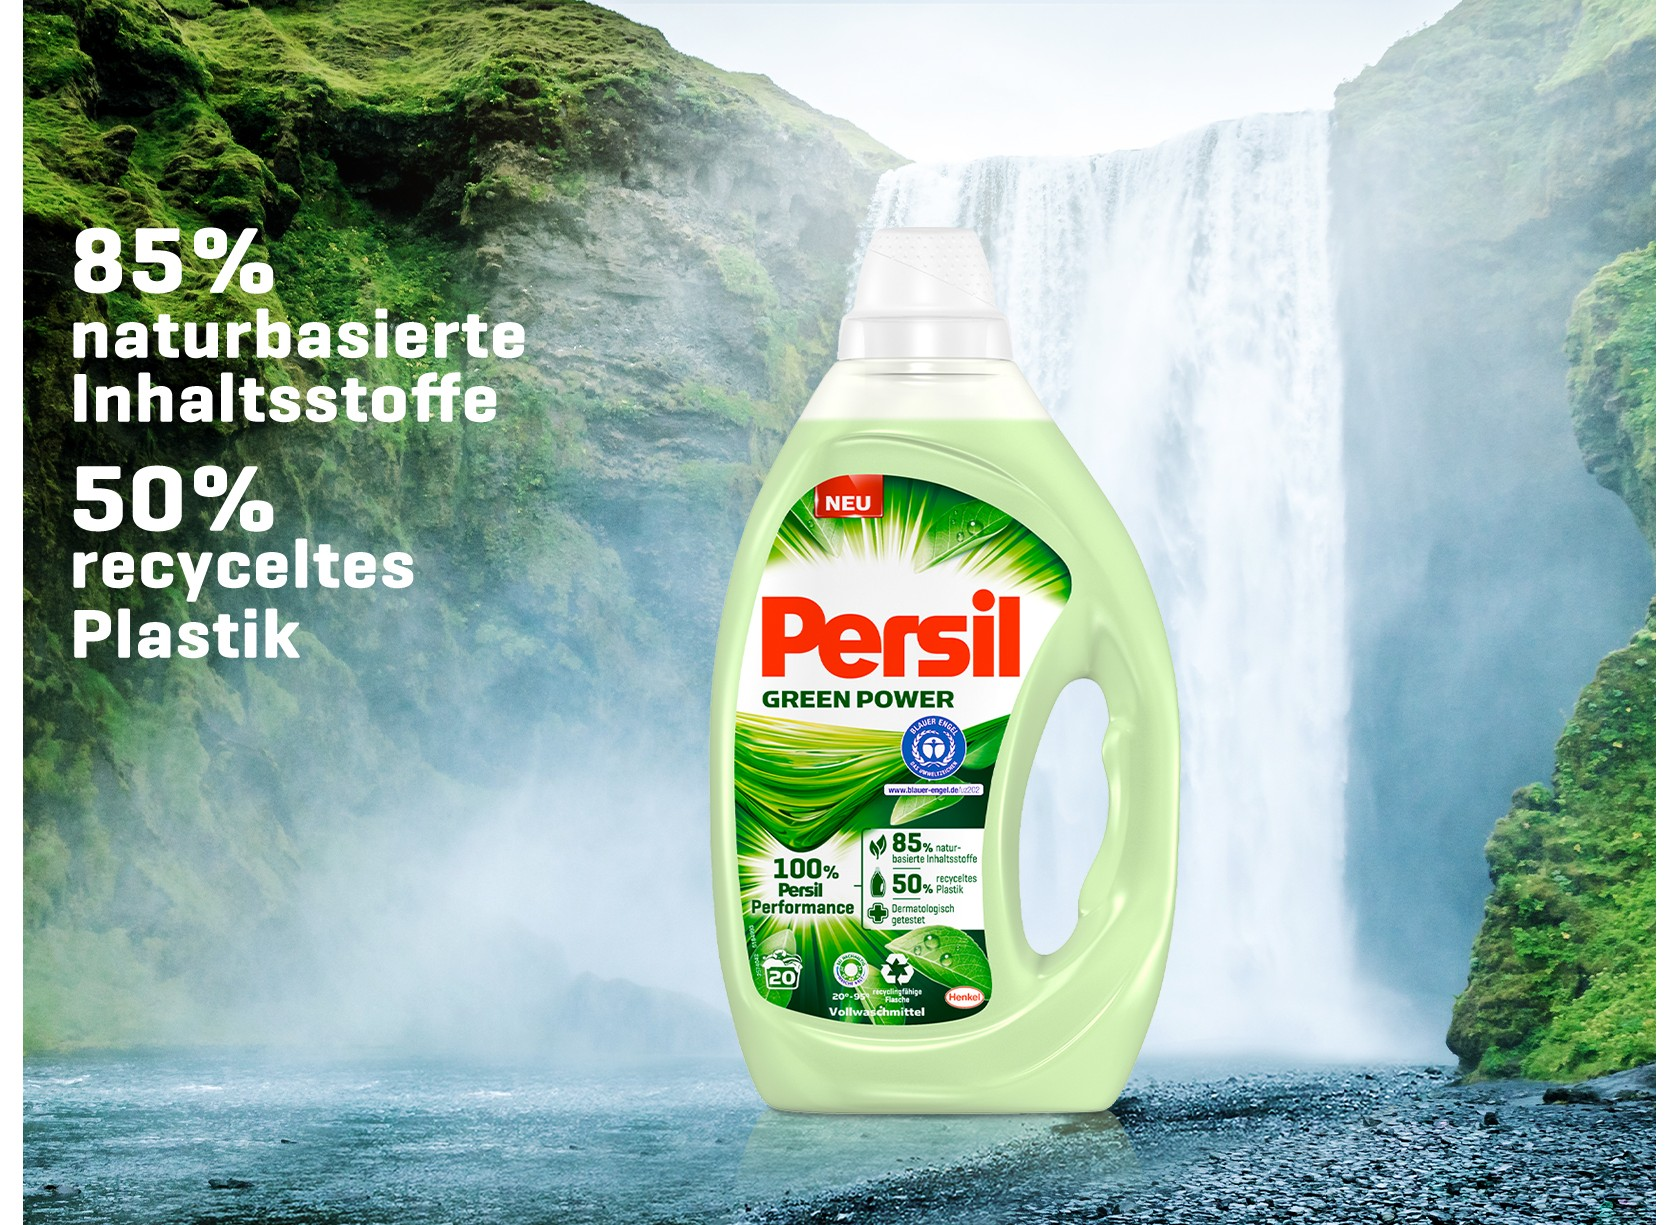 Persil Green Power